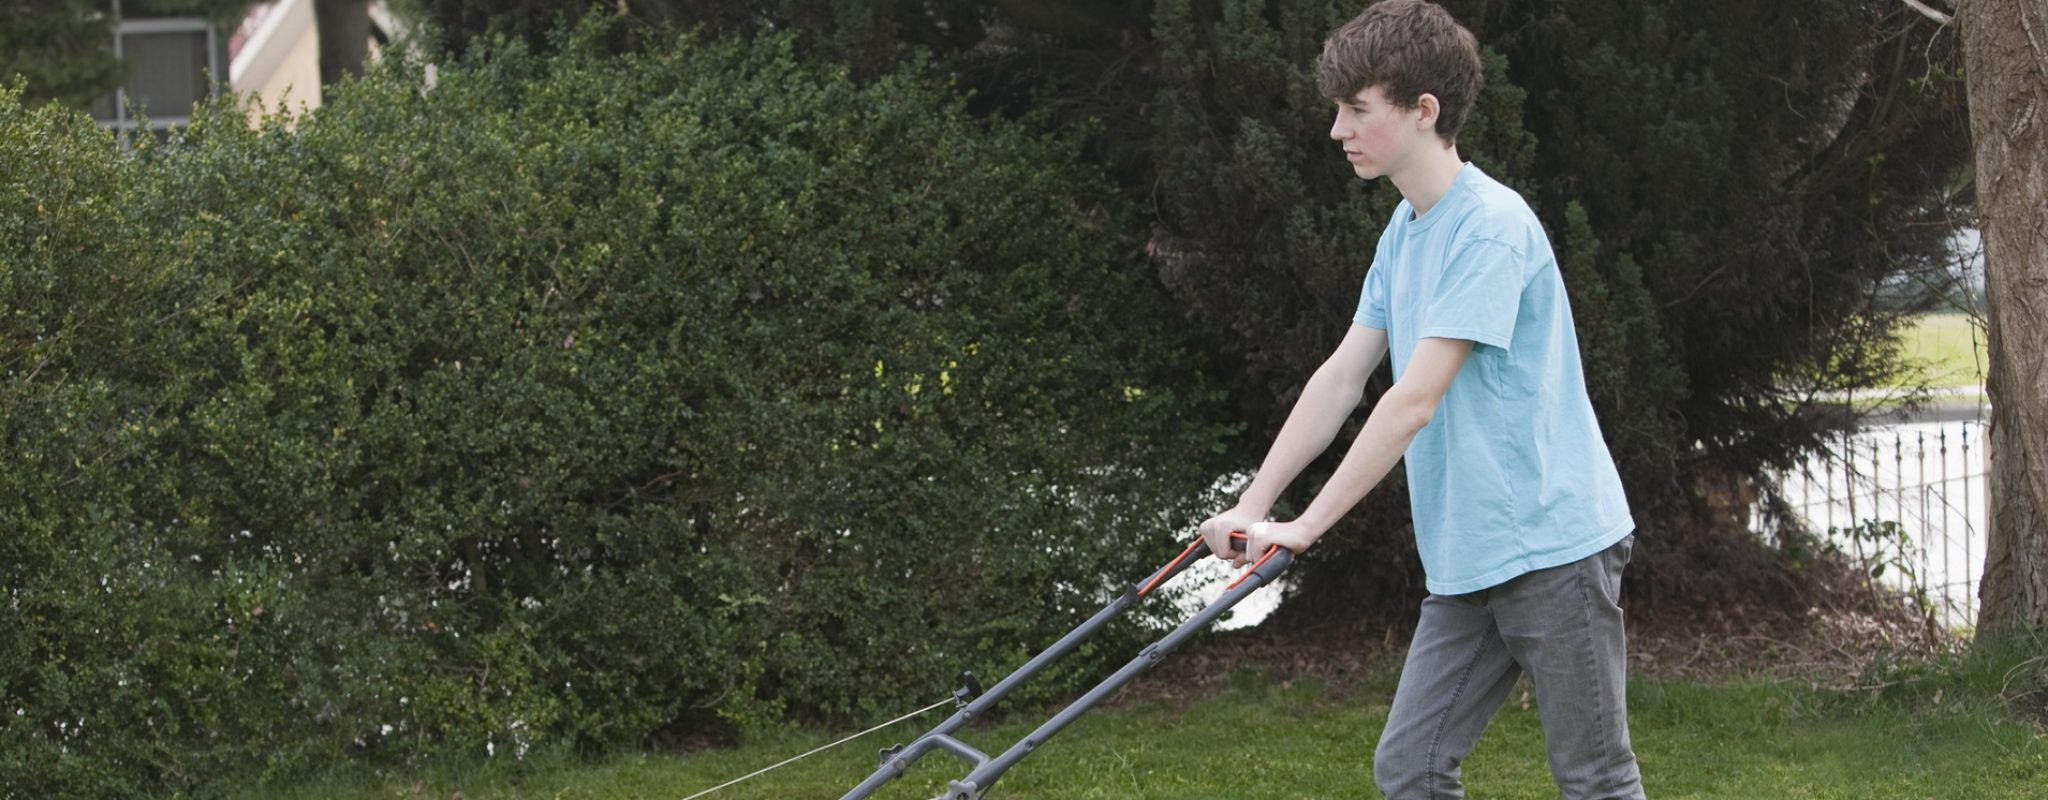 Kids And Lawn Mowers Tips To Stay Safe